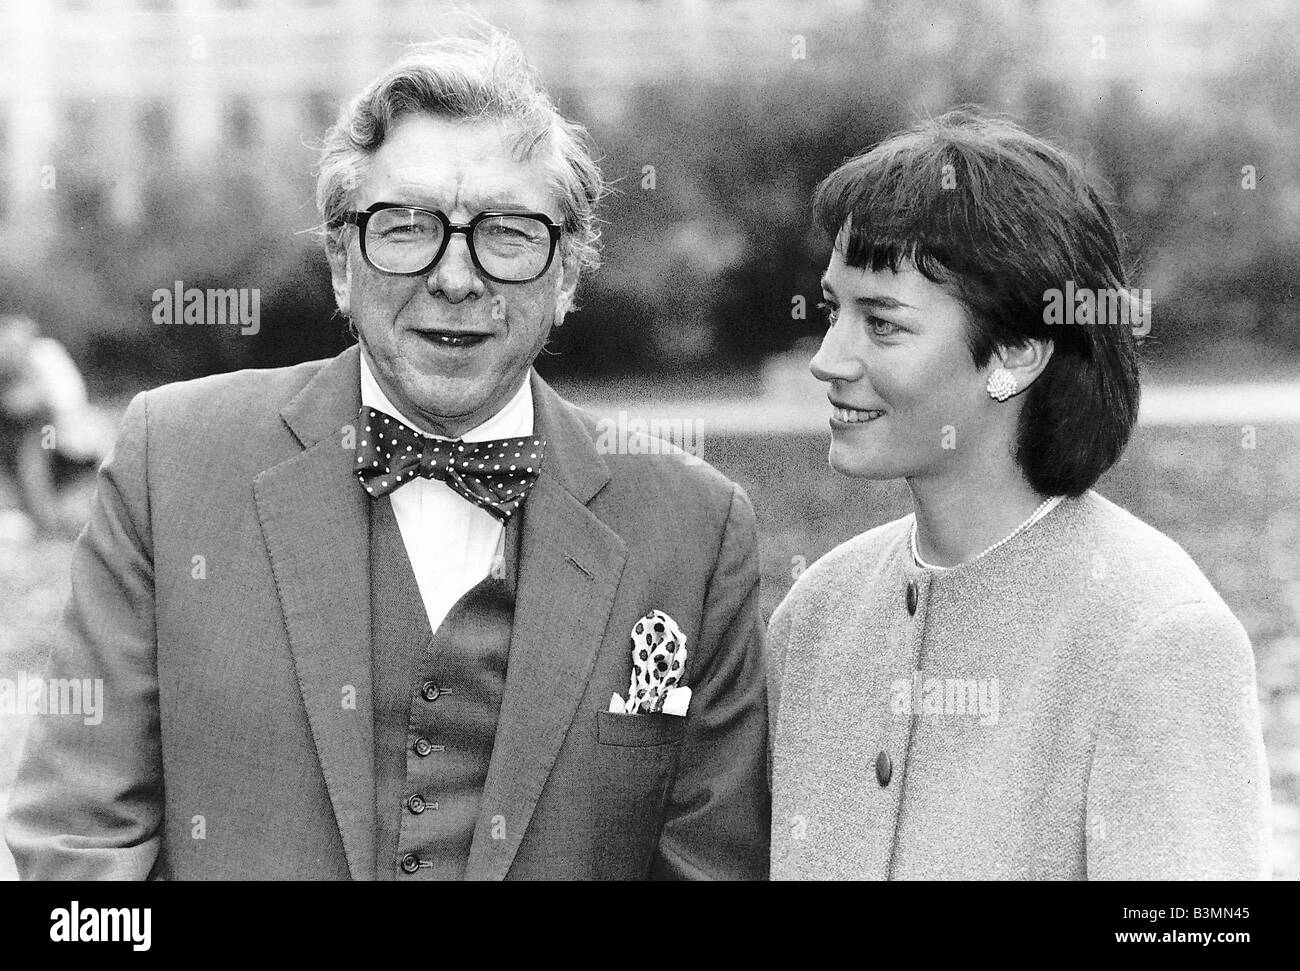 Sir Robin Day Tv Presenter and Broadcaster who will present a new programme with 31 year old Sarah Baxter dbase - Stock Image